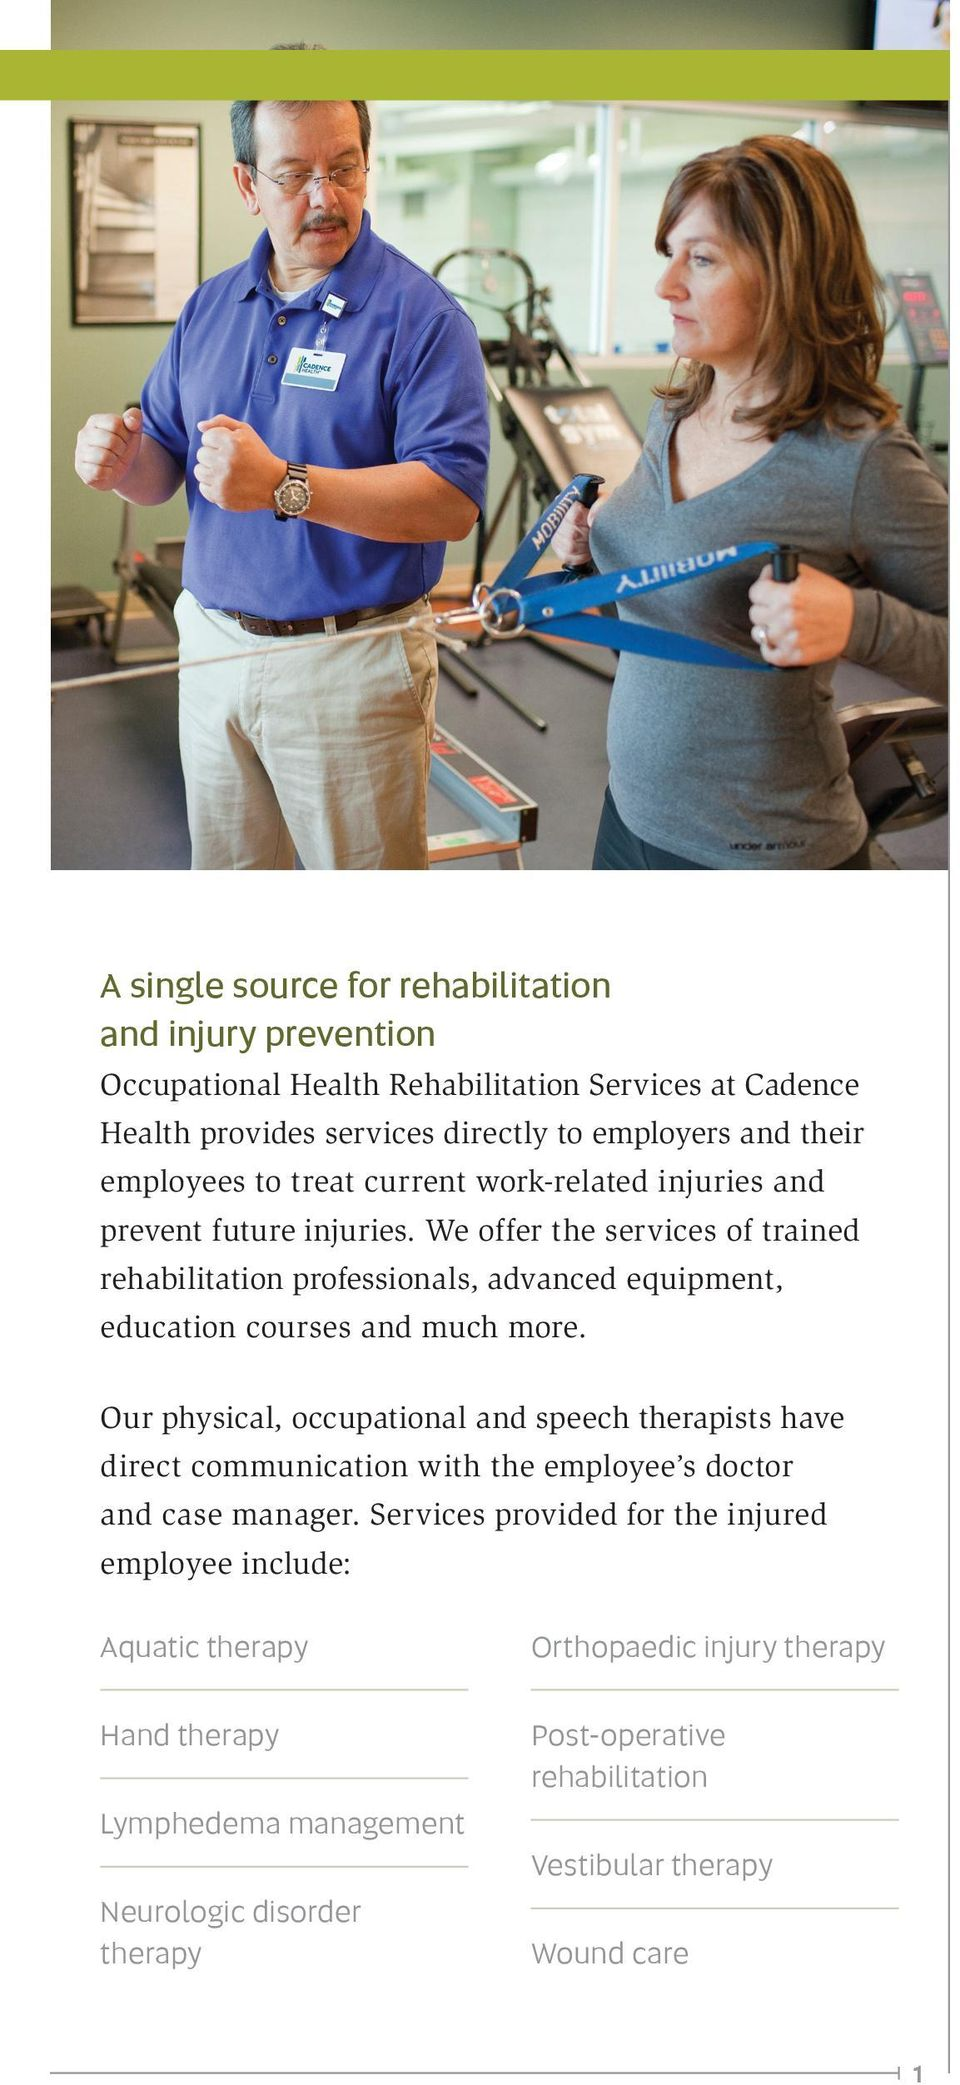 We offer the services of trained rehabilitation professionals, advanced equipment, education courses and much more.